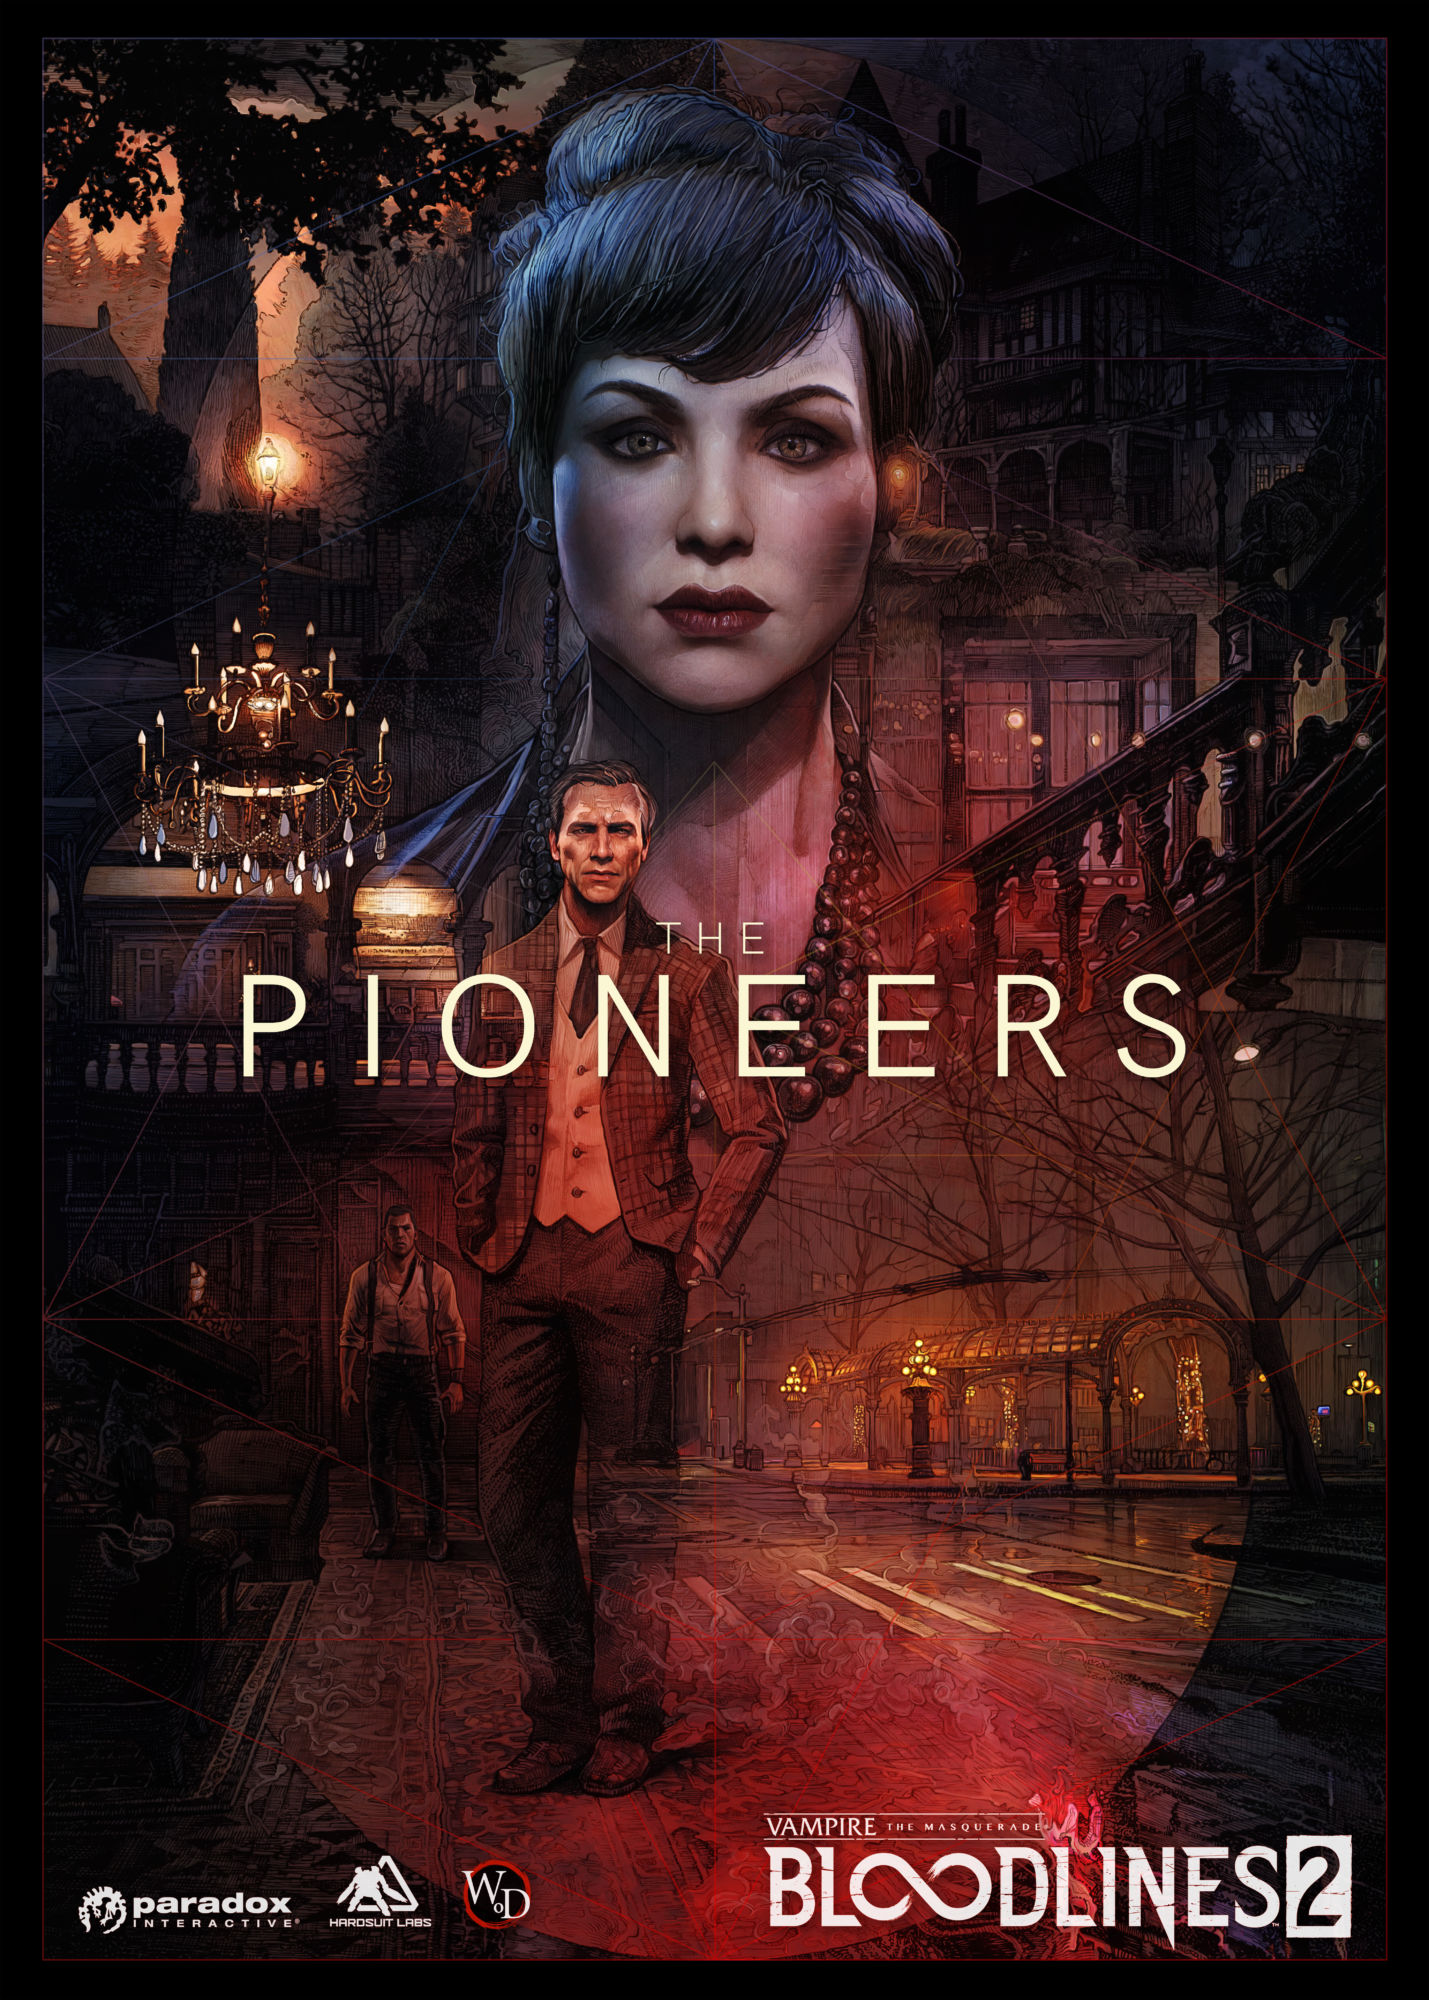 Vampire: The Masquerade - Bloodlines 2: The Pioneers